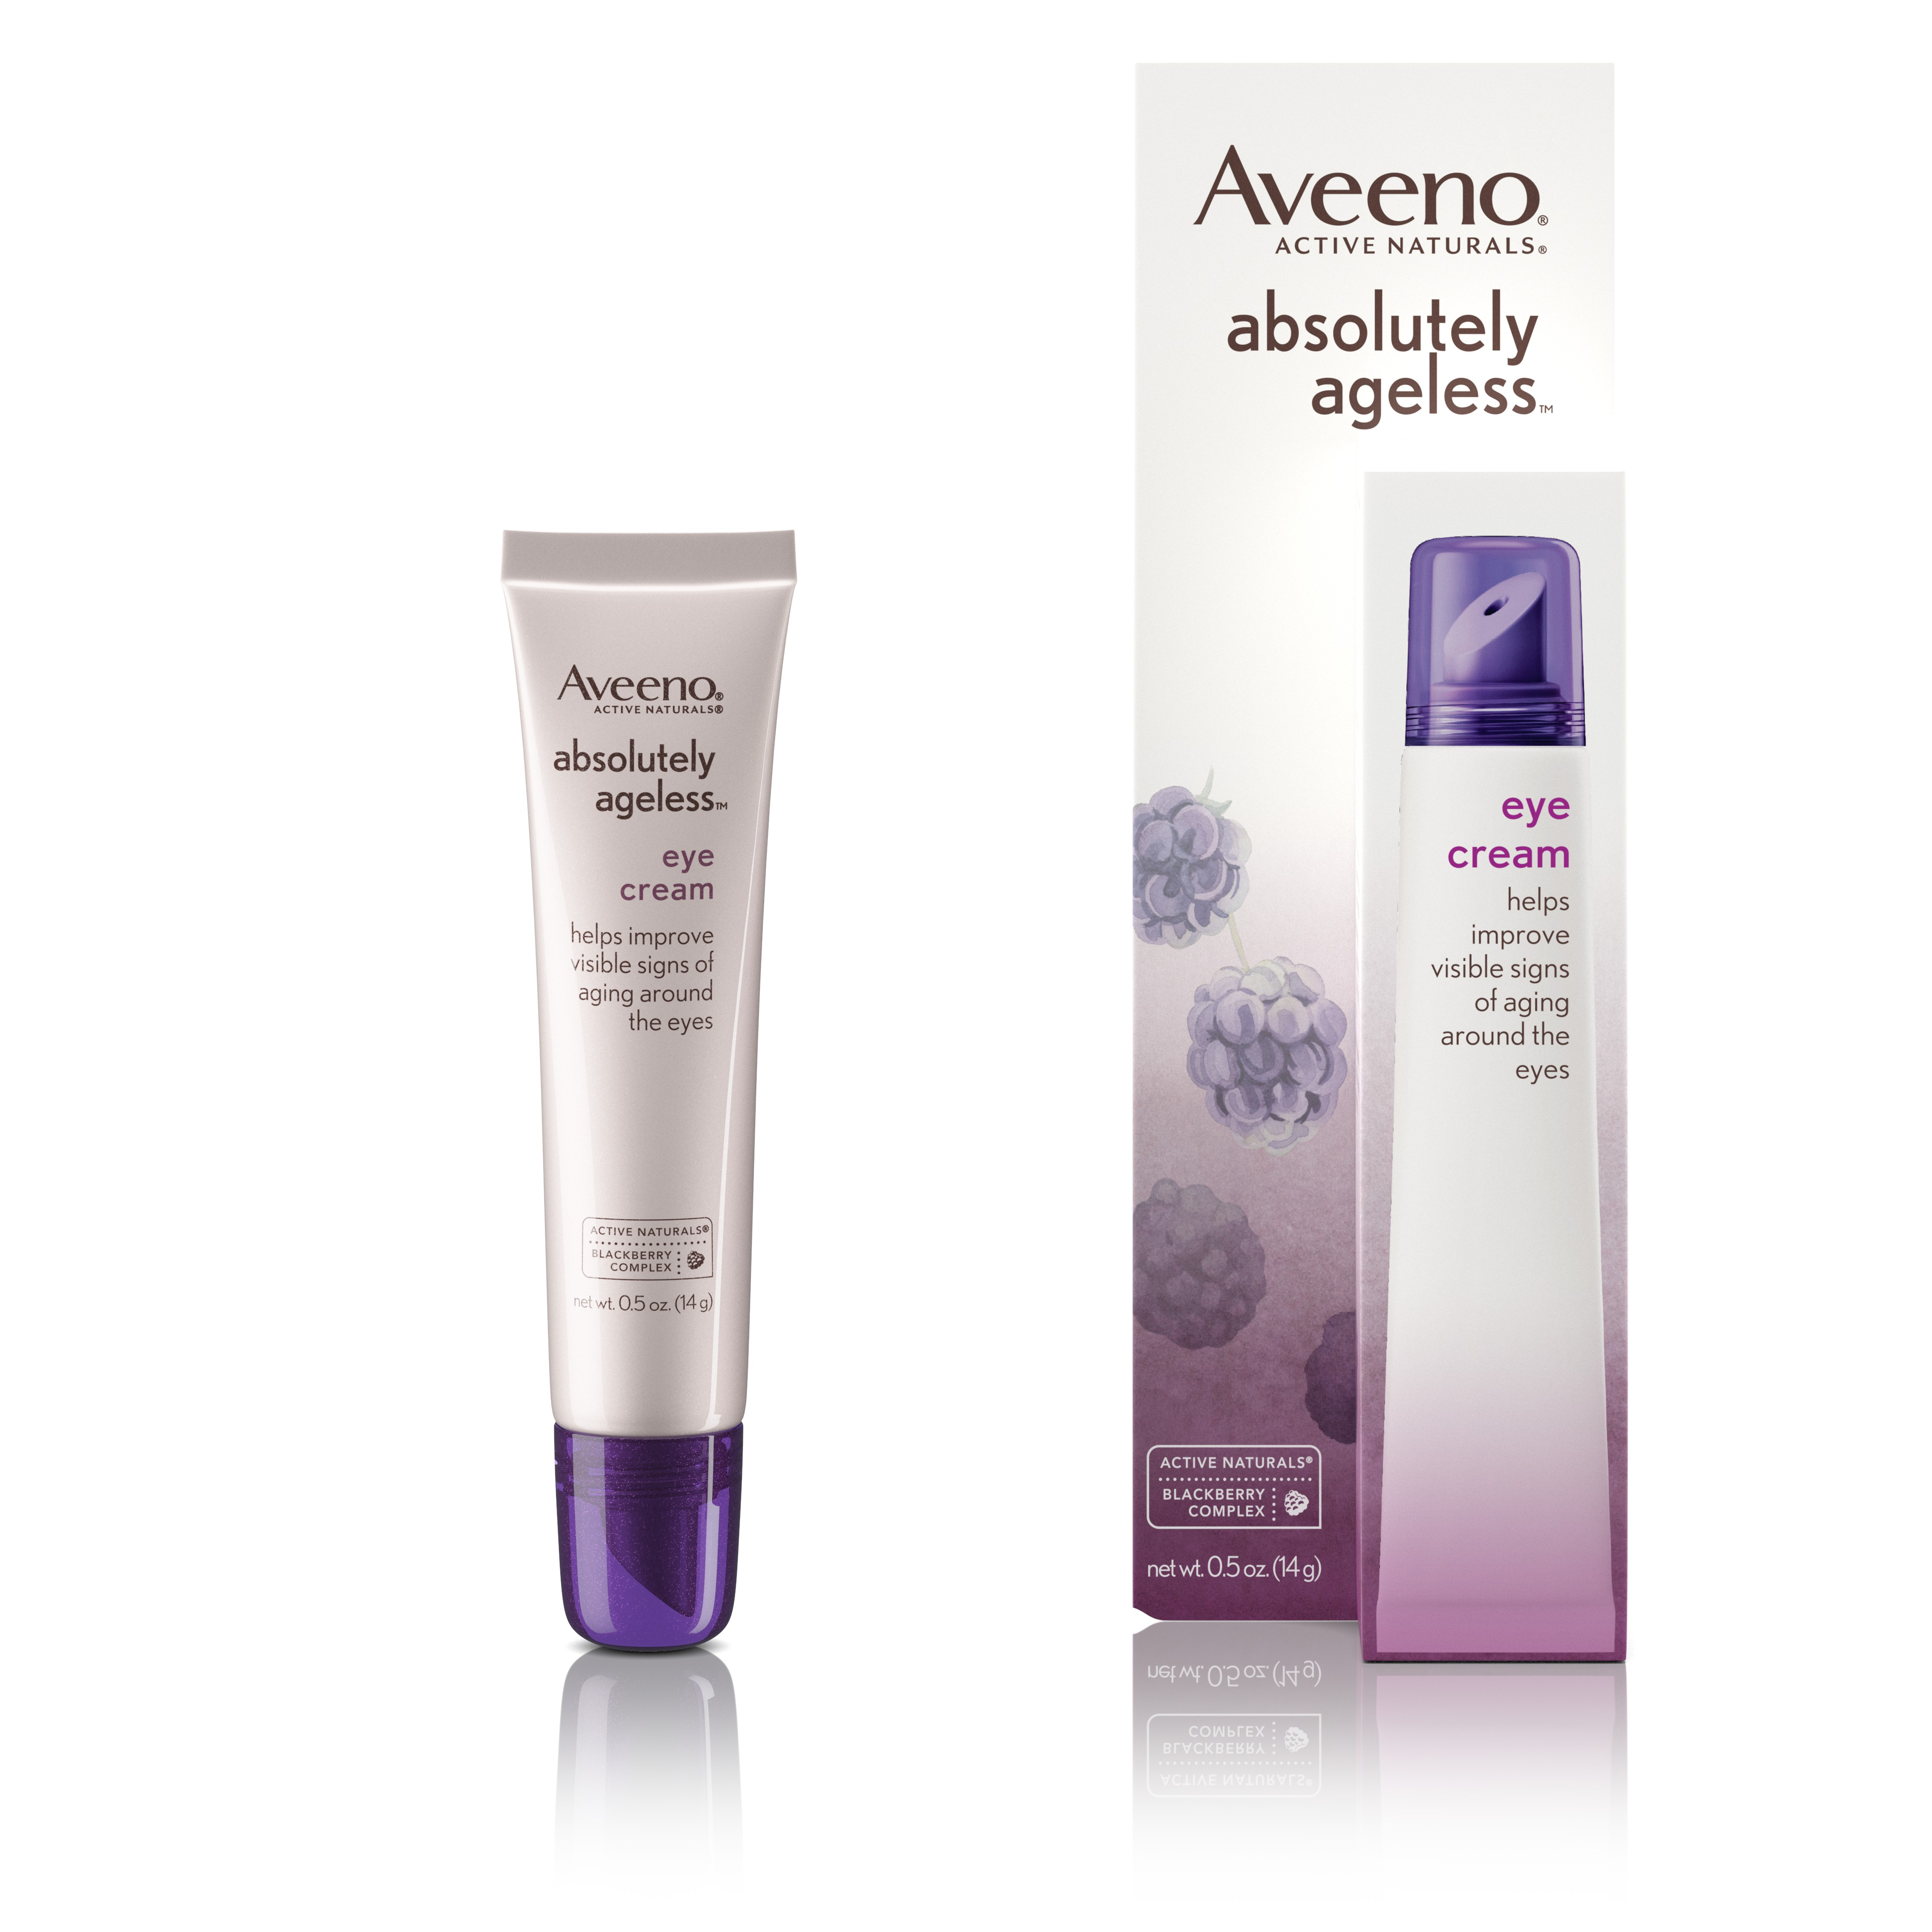 Aveeno Absolutely Ageless 3-in-1 Under Eye Anti-Wrinkle Cream, 0.5 oz